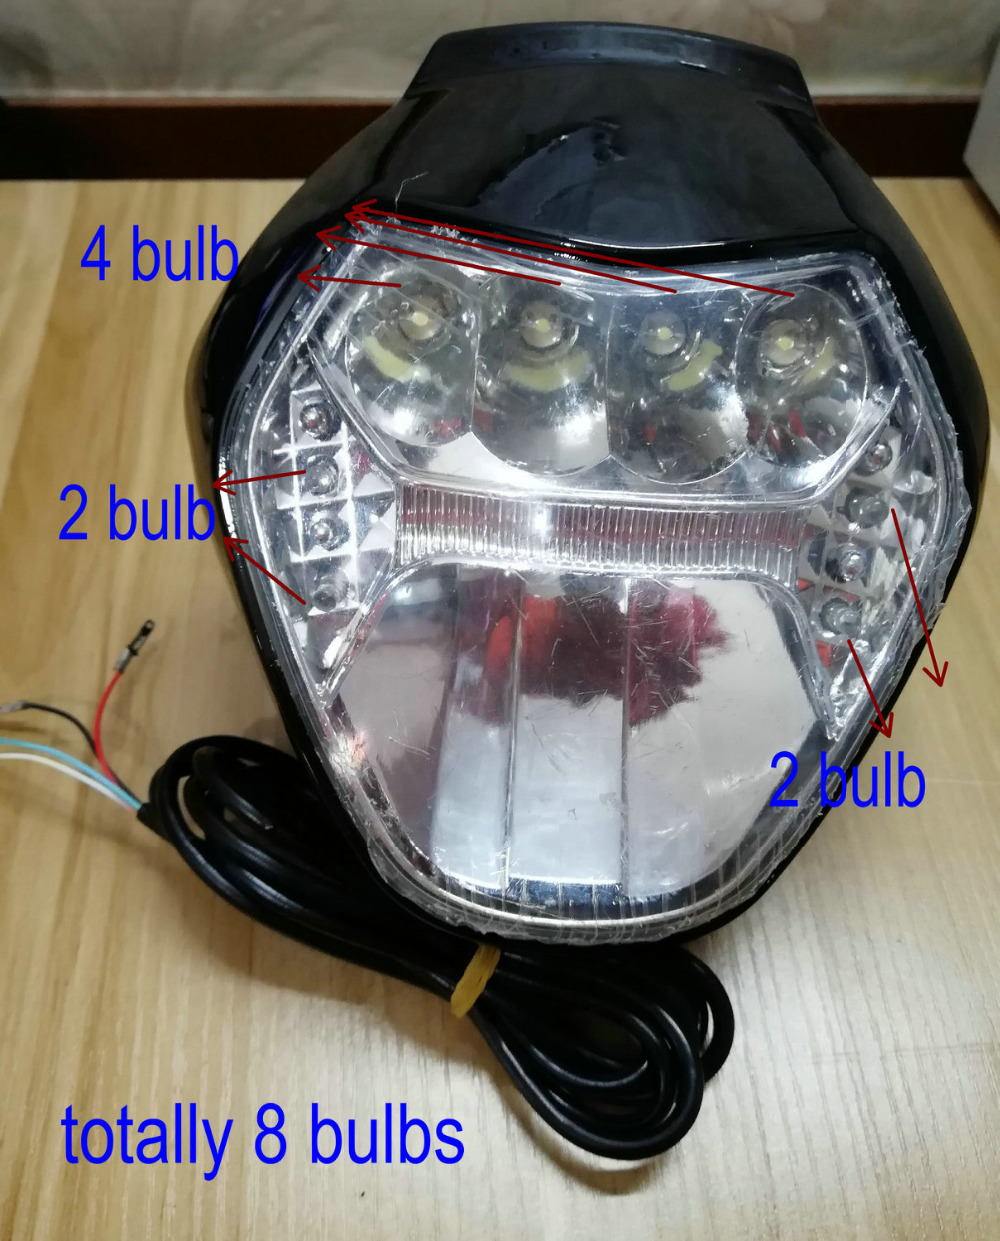 frontlight with display for big power electric scooter motorcycle lamp with battery level/speed/light indicator with bluetoothfrontlight with display for big power electric scooter motorcycle lamp with battery level/speed/light indicator with bluetooth